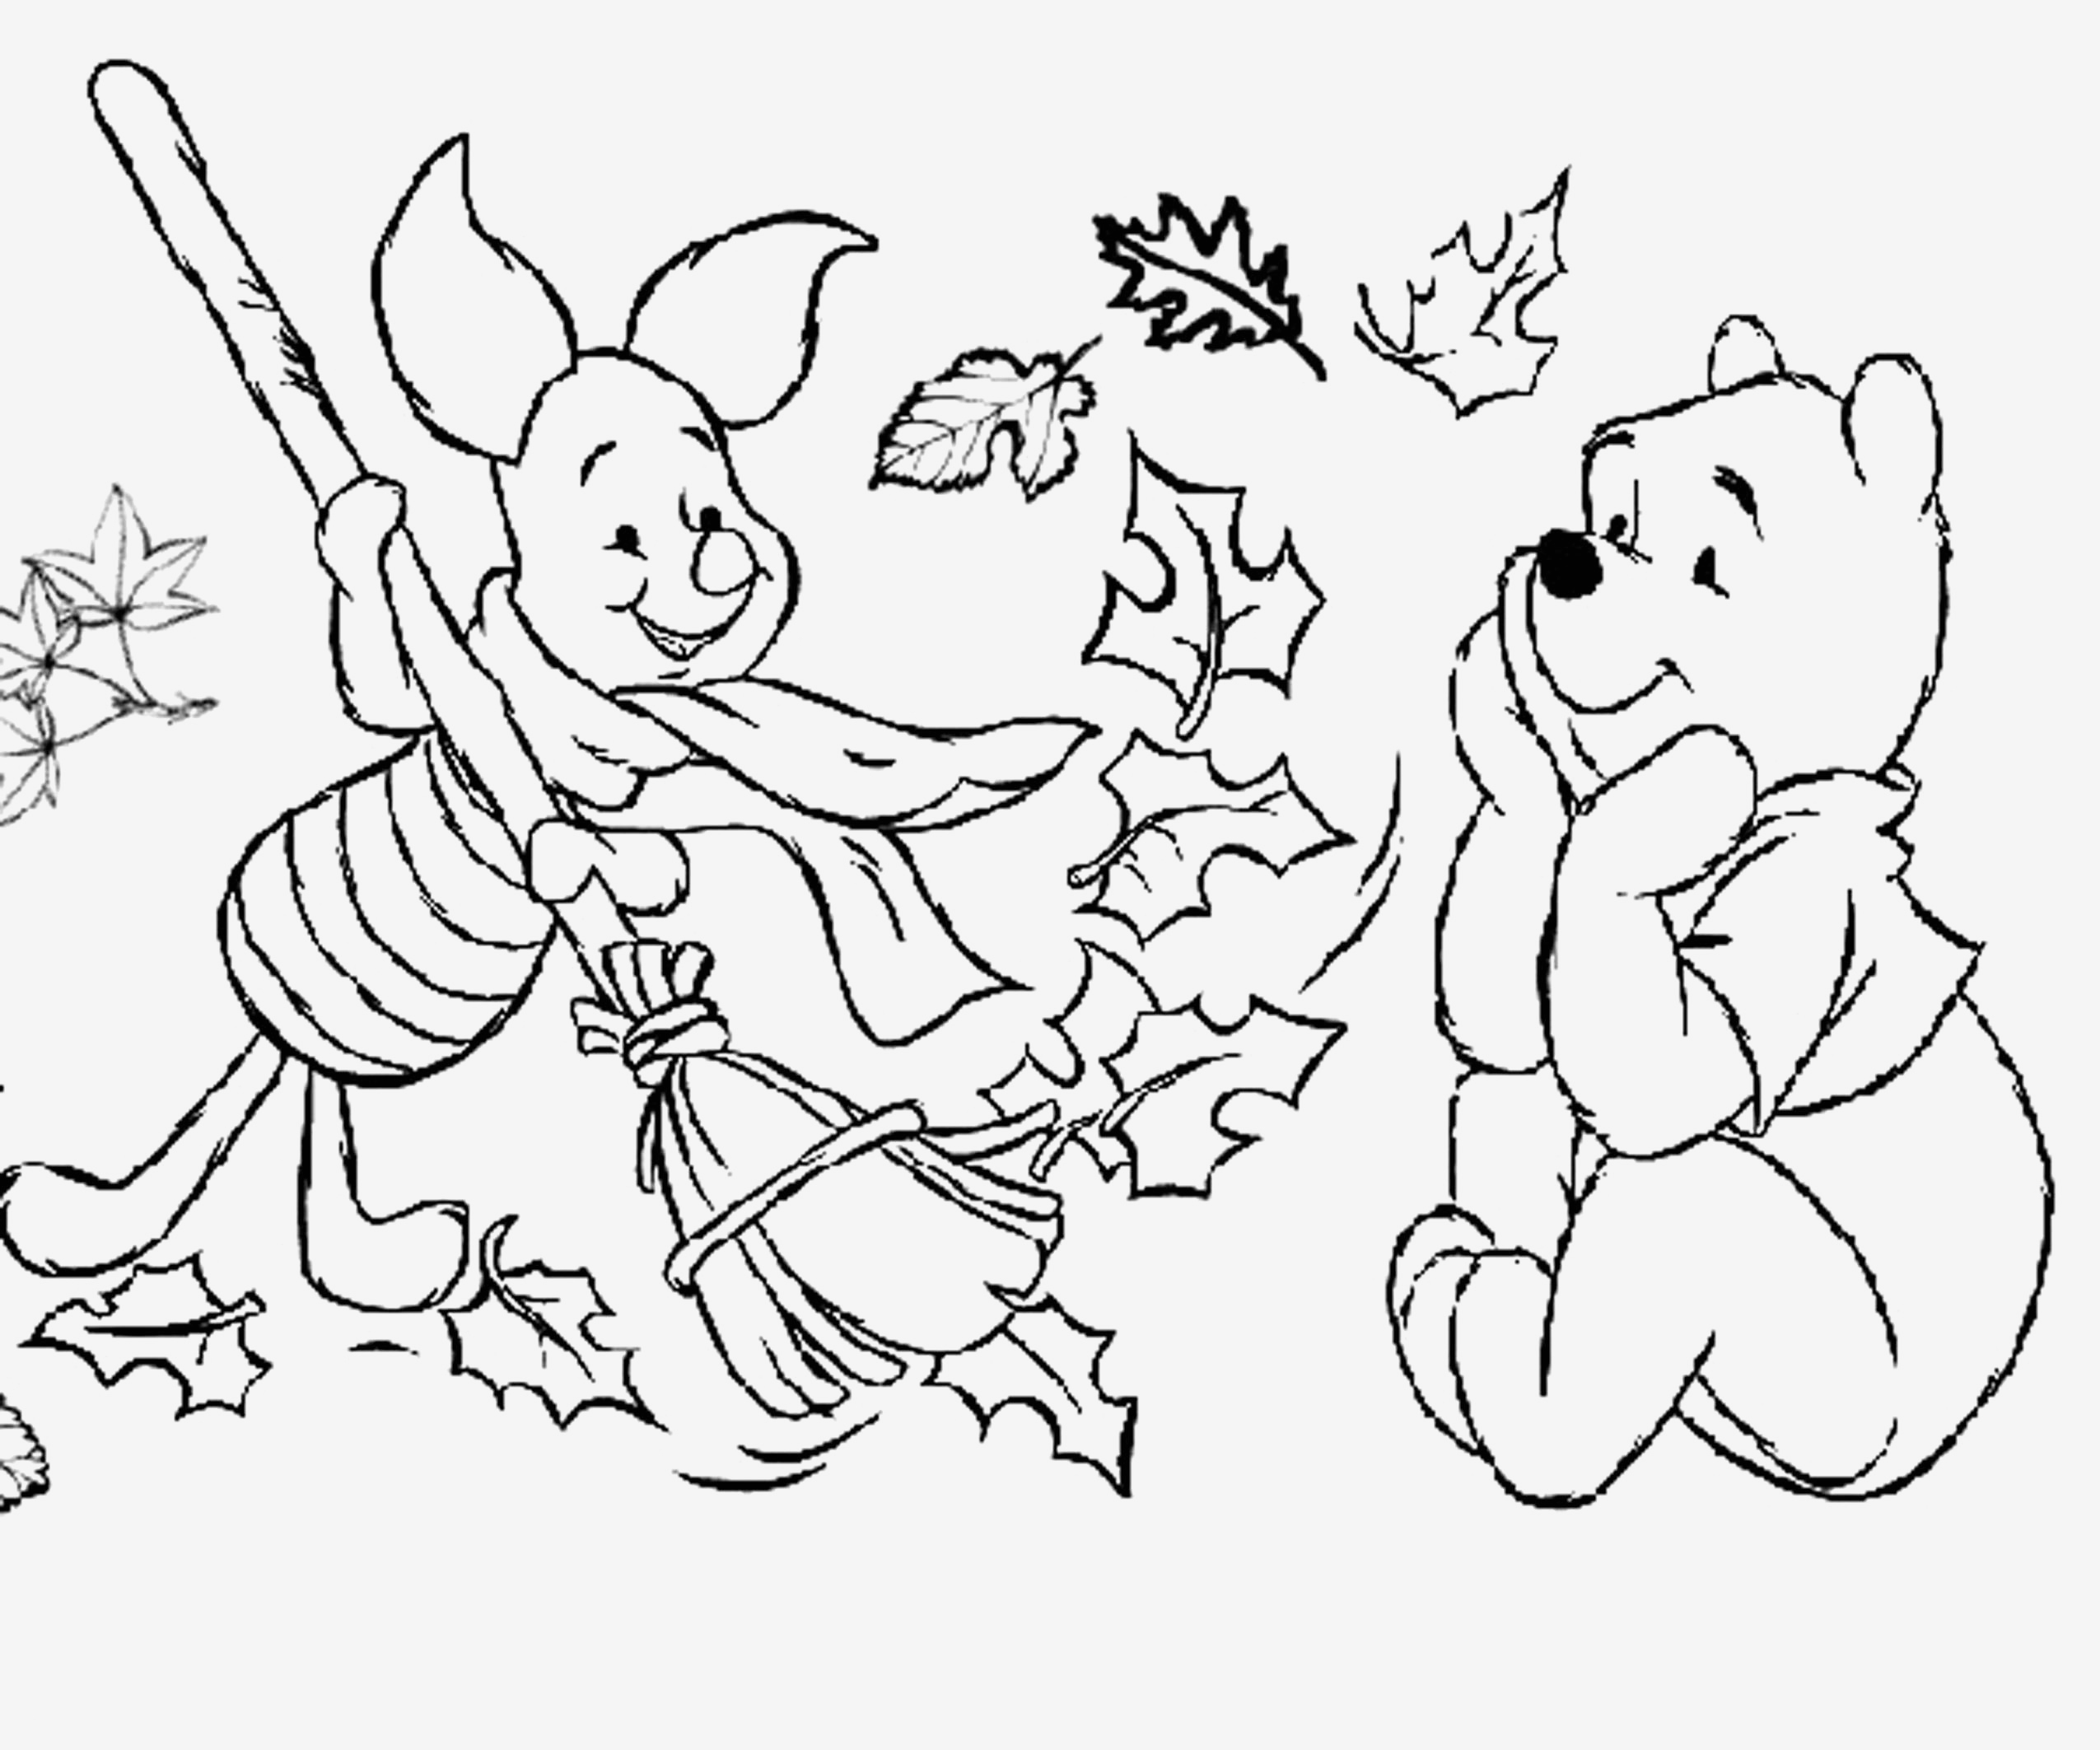 free animal coloring pages for kids Download-Easy Adult Coloring Pages Free Print Simple Adult Coloring Pages Elegant Best Coloring Page Adult Od Kids 6-i